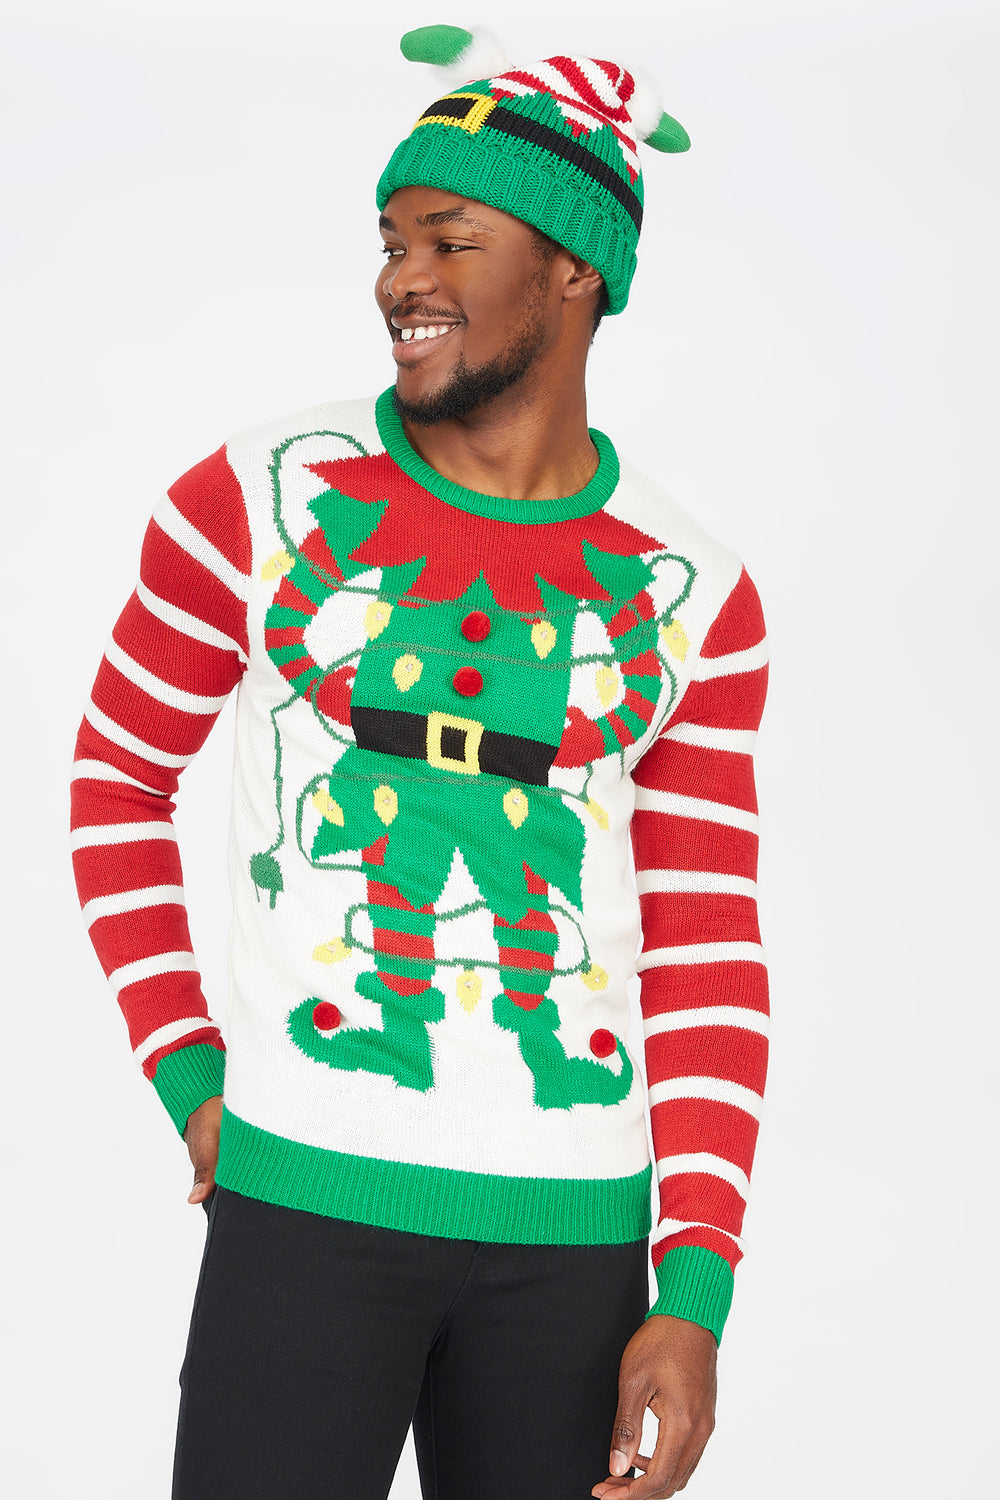 Light-Up Elf Graphic Ugly Christmas Sweater White